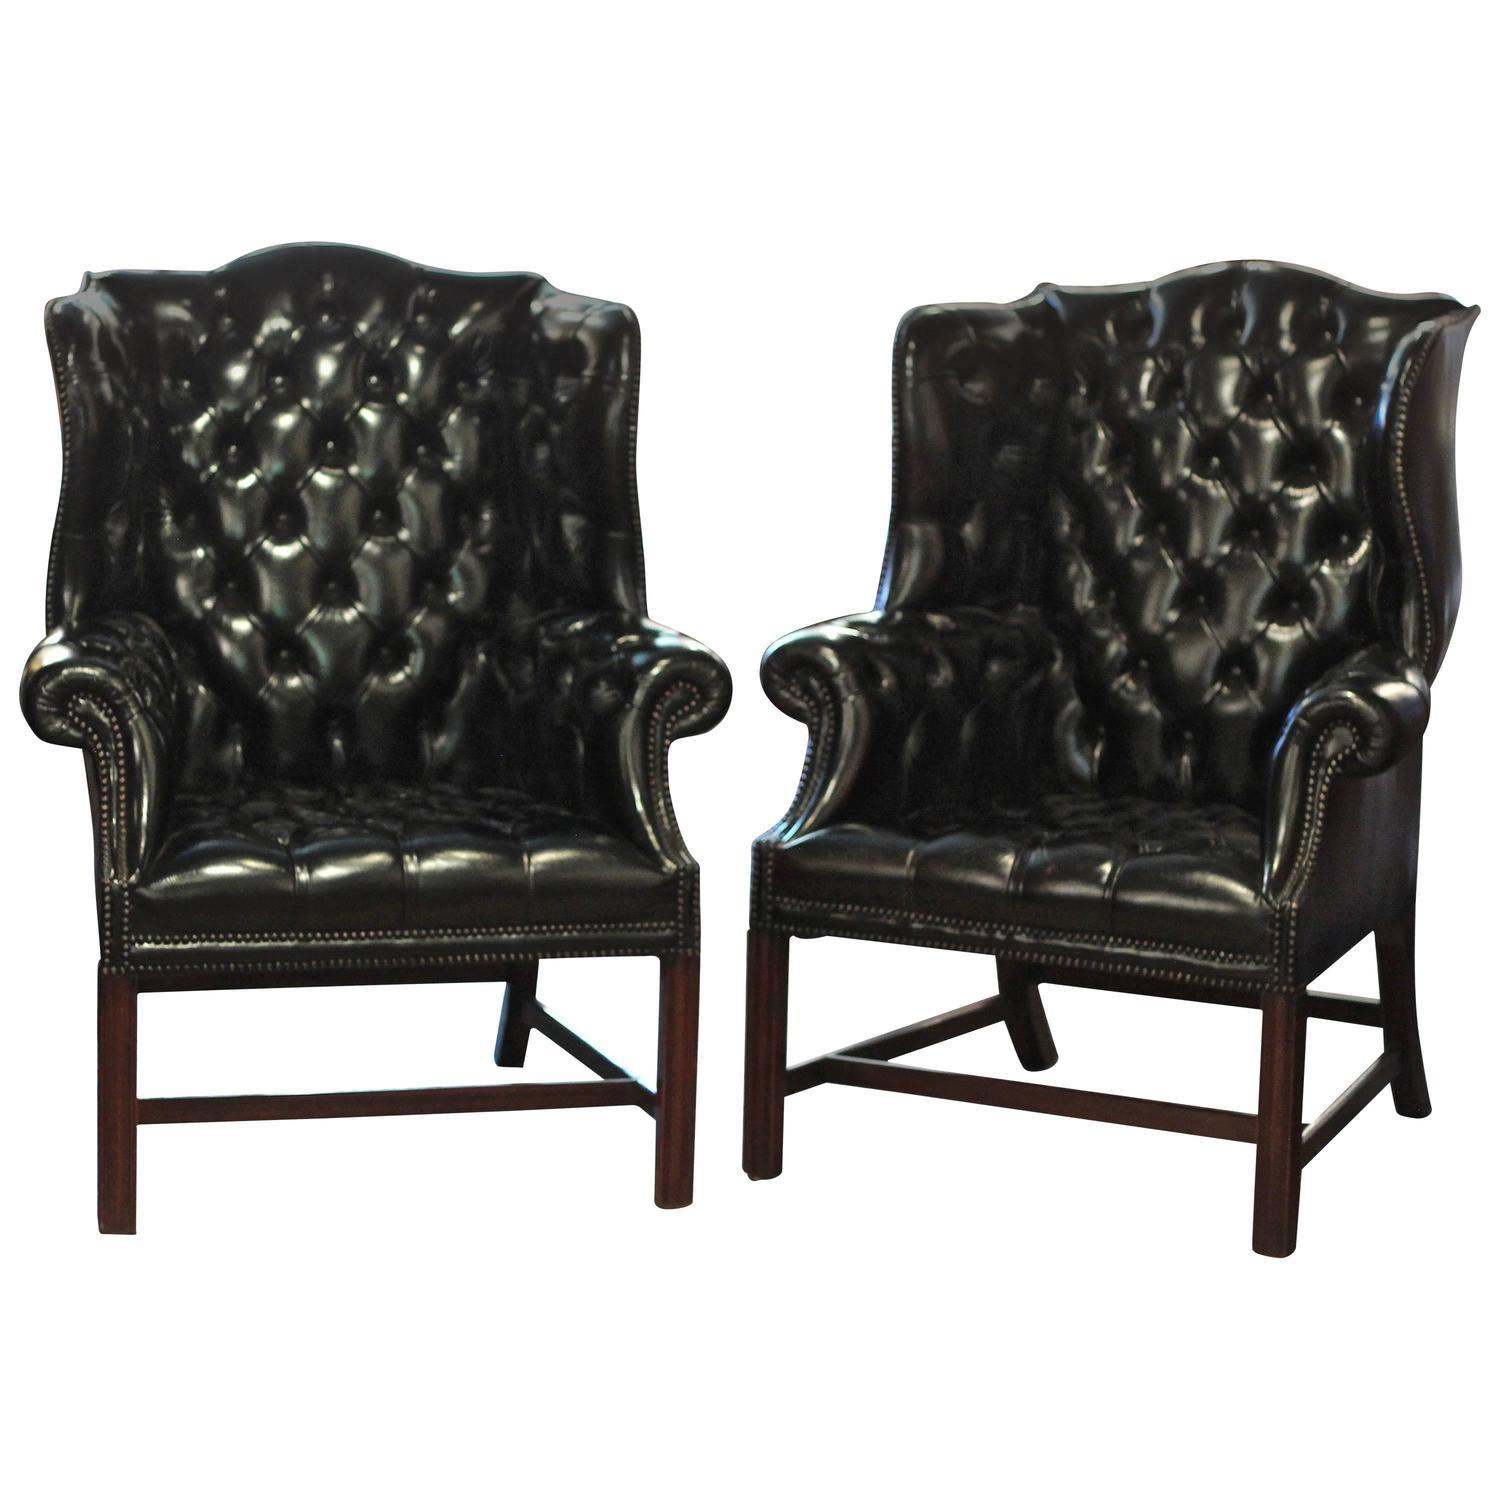 Pair of English Black Leather Wing Chairs at 1stdibs